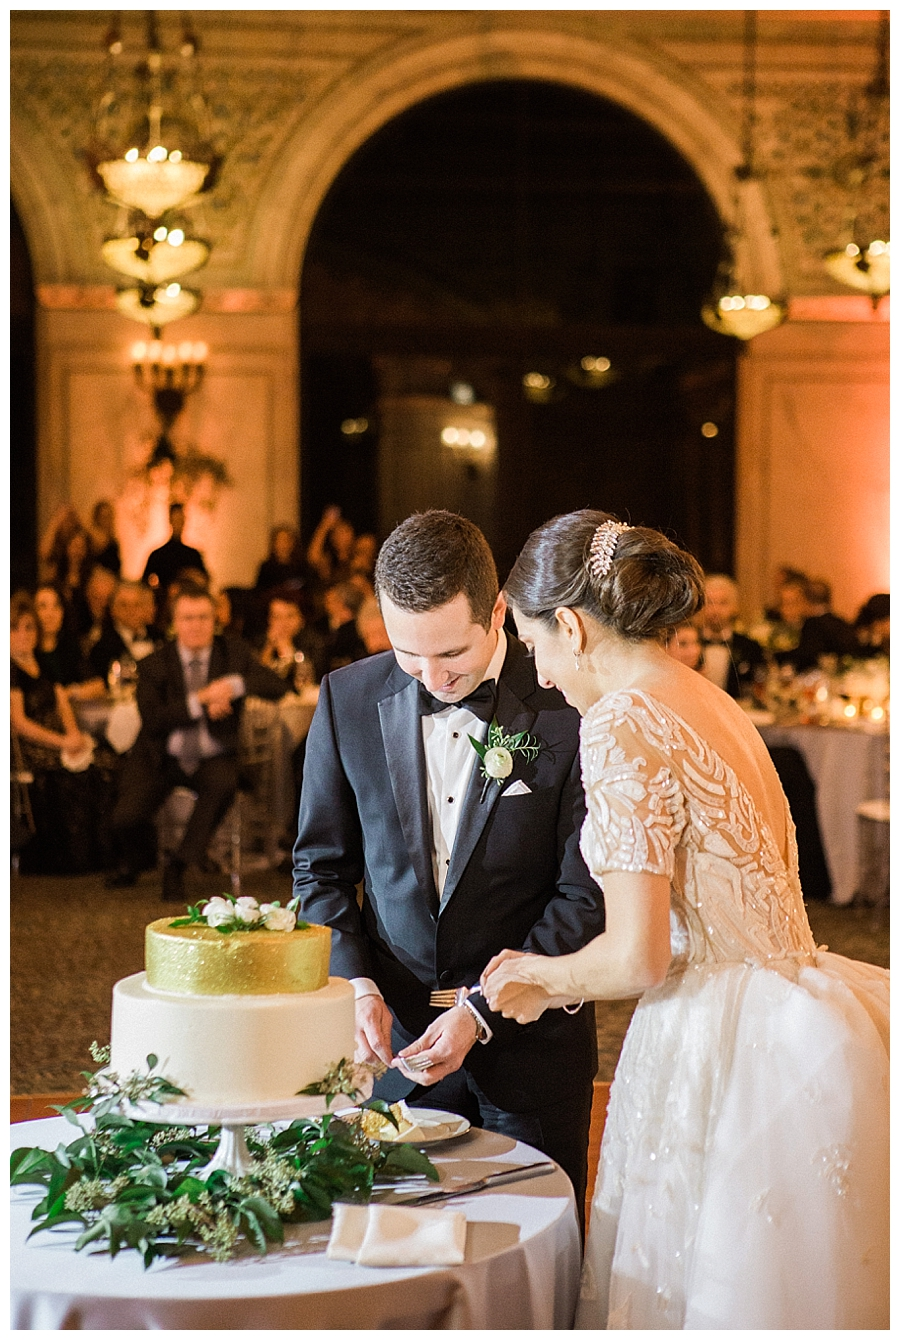 fine art wedding photography of cake cutting at the Chicago Cultural Center, Chicago